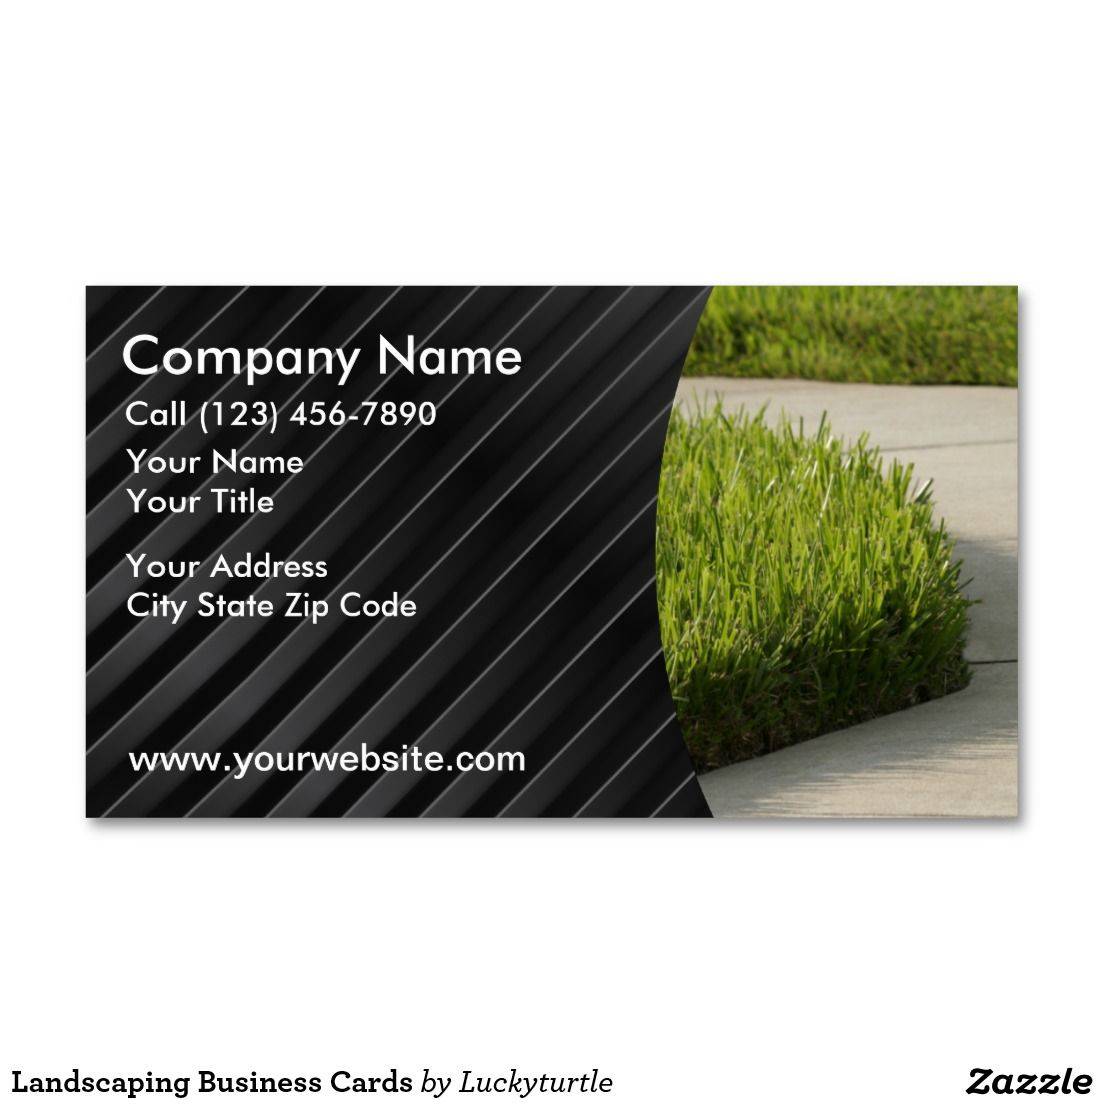 Landscaping Business Cards | Business Cards: Landscaping ...